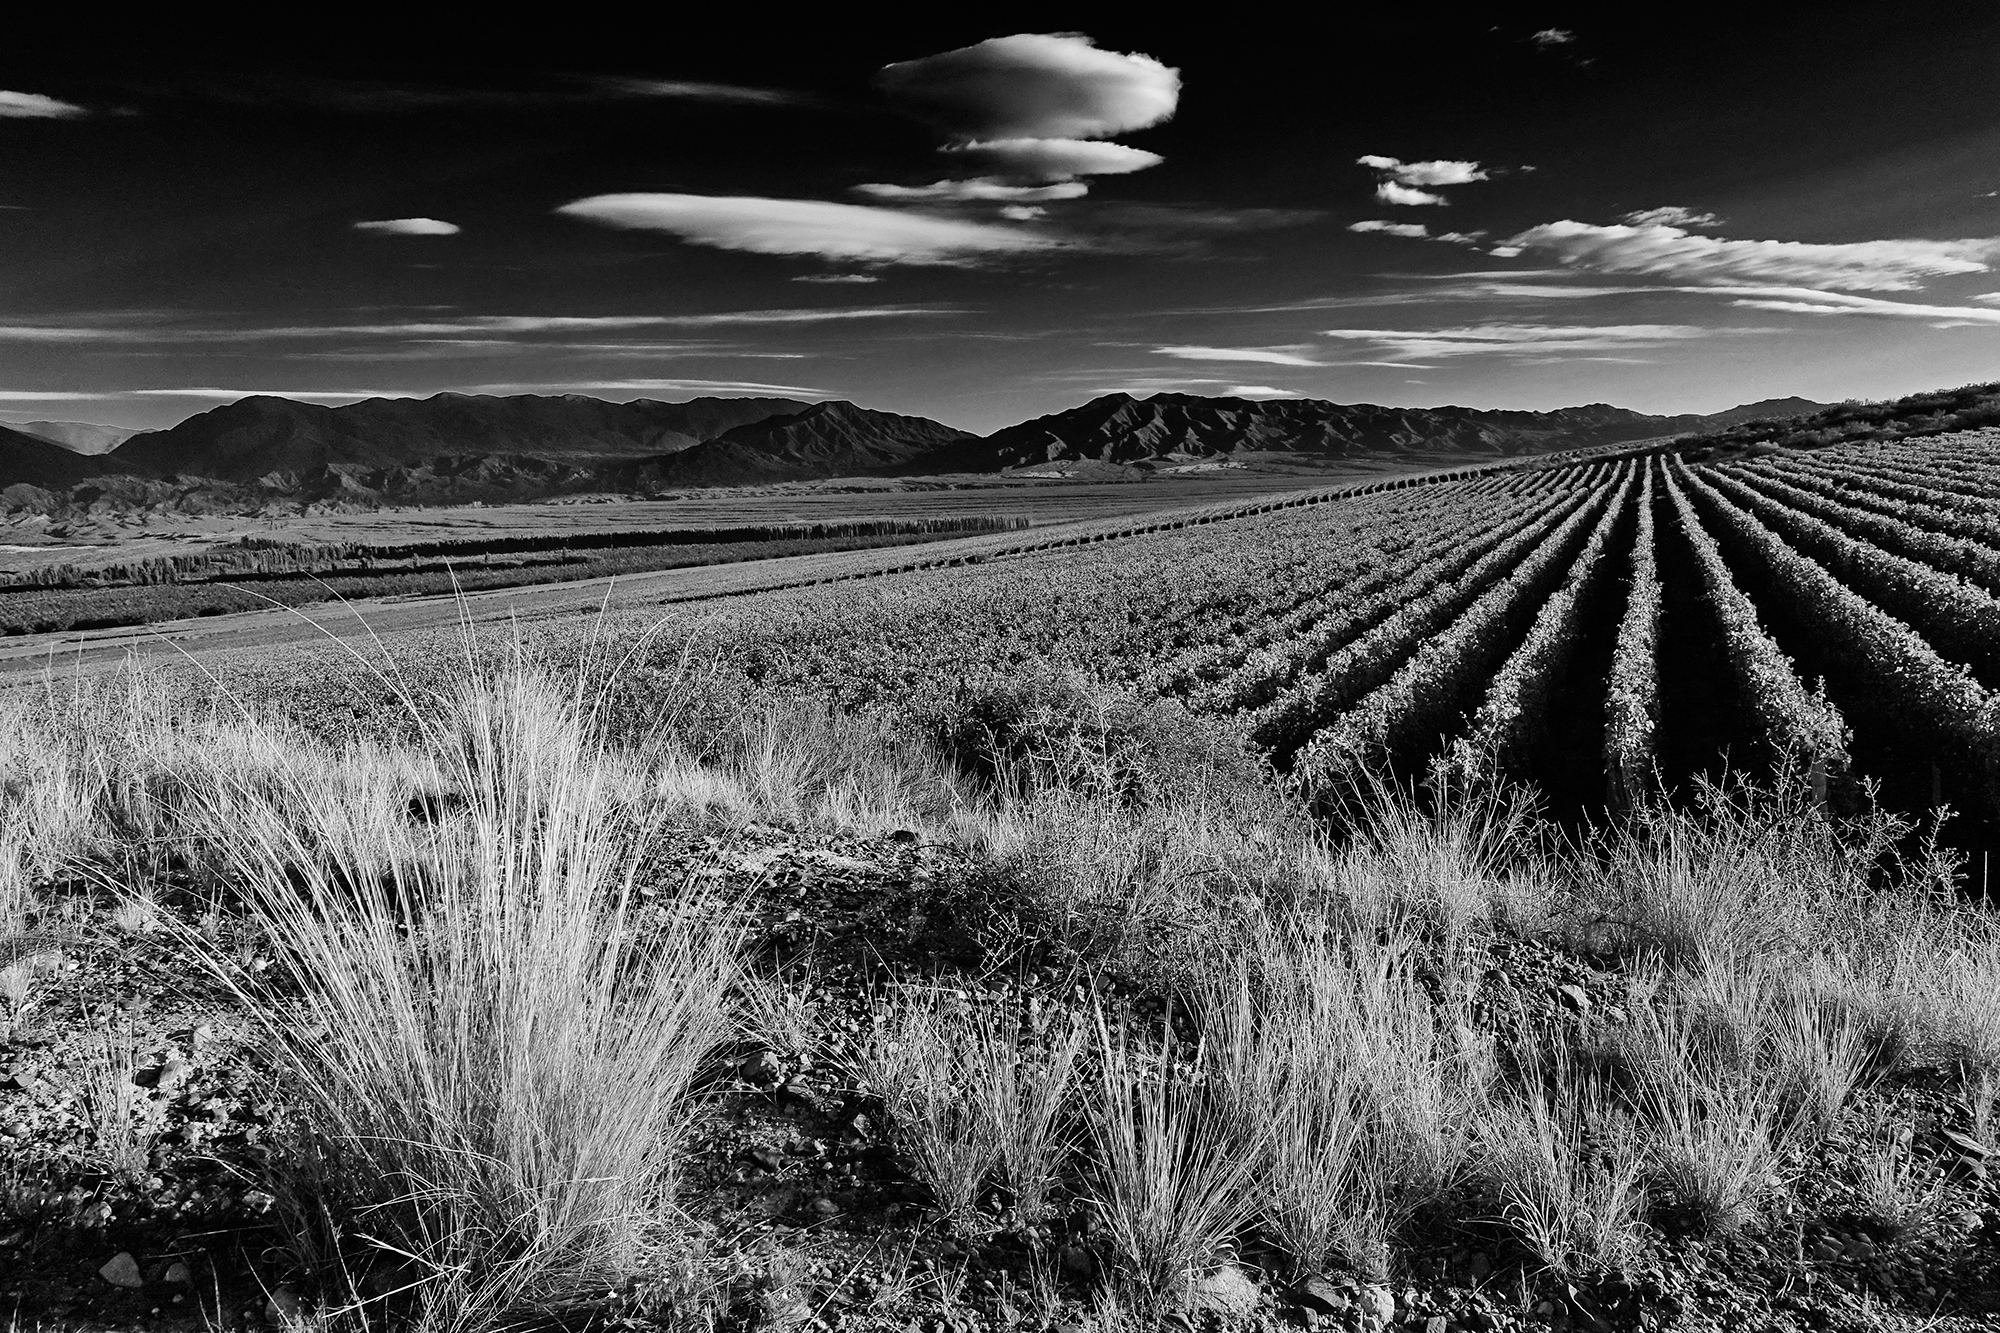 The Vineyards. Valle del Pedernal, San Juan, Argentina, 2016